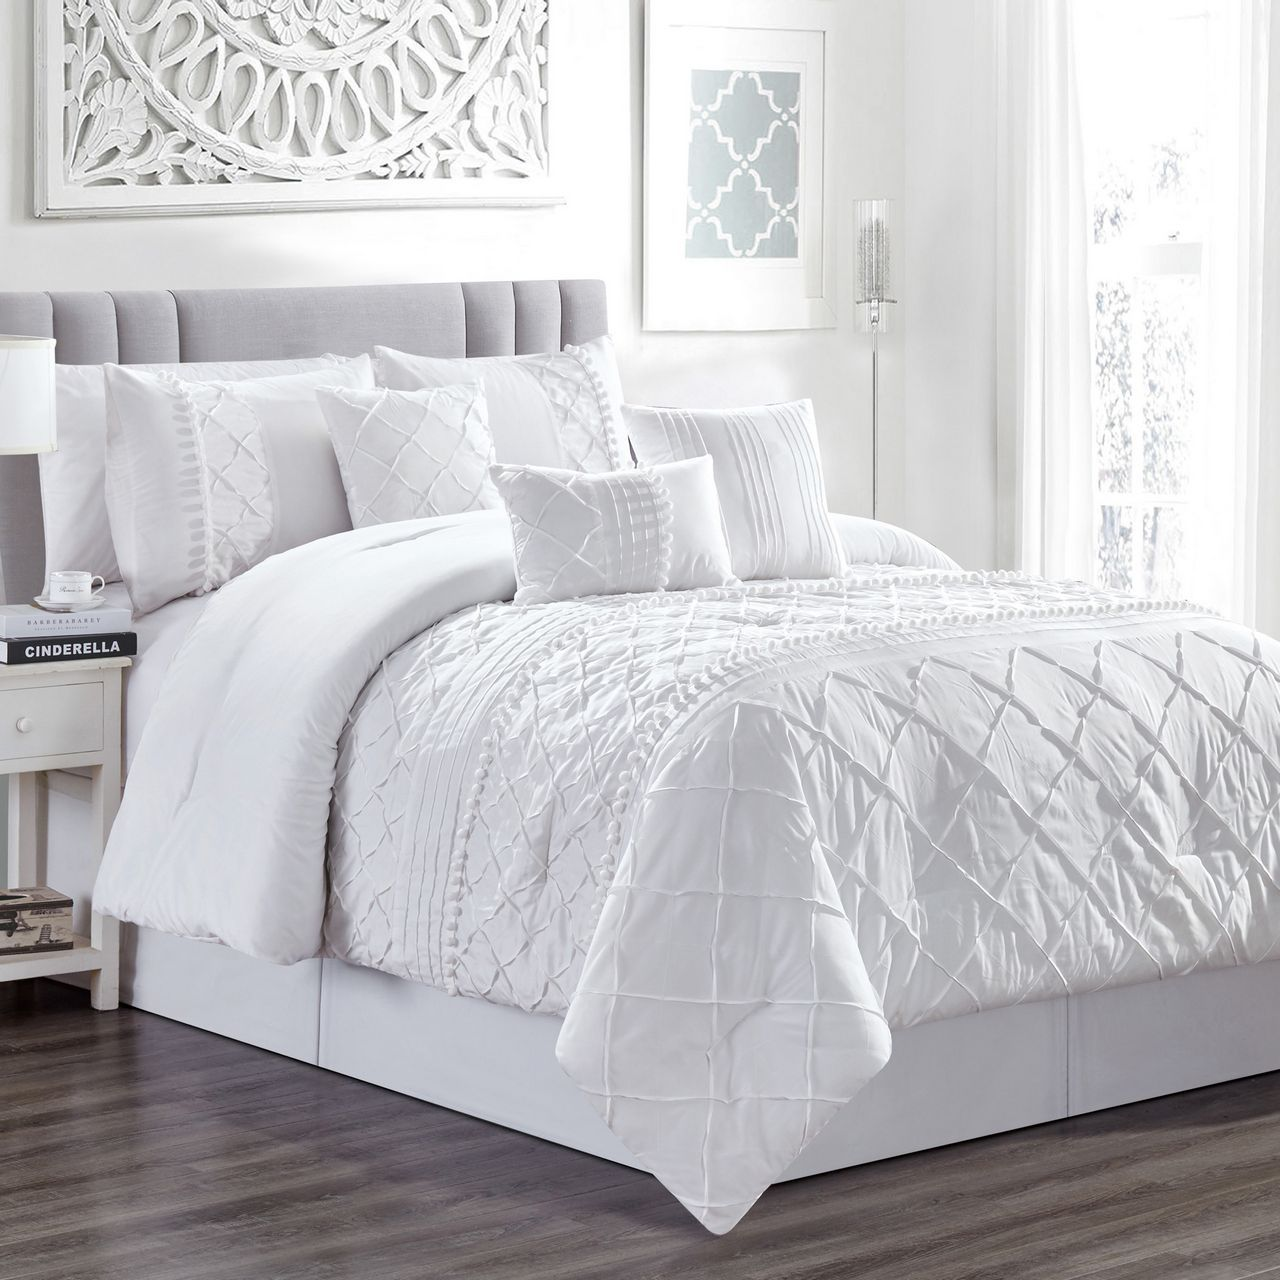 7 Piece Harmony White Comforter Set